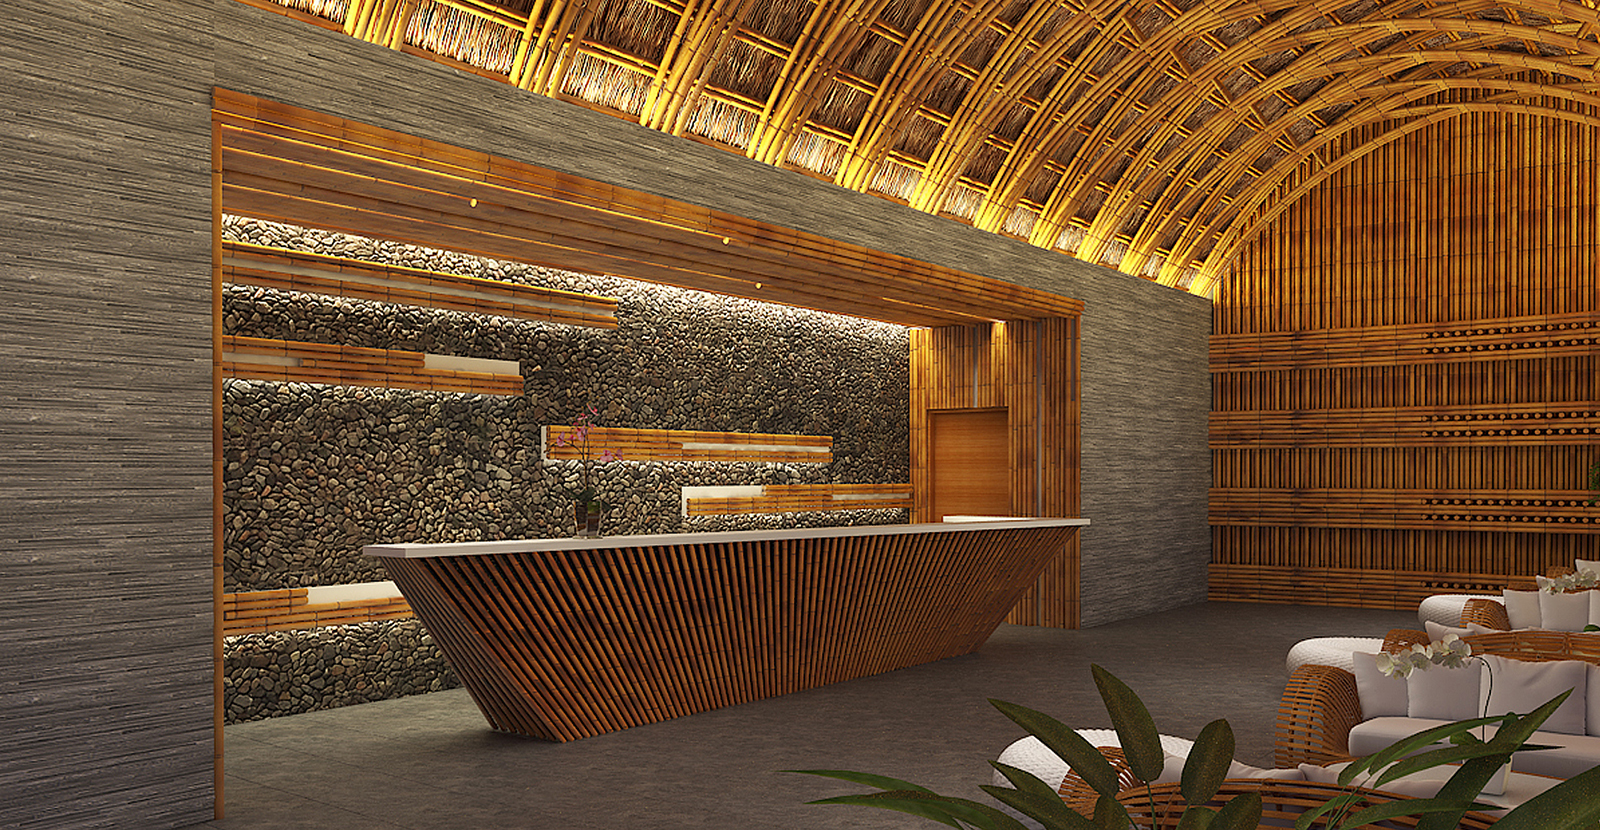 U i m c a n i th t tre bamboo architecture - Bamboo designs for interior designing ...